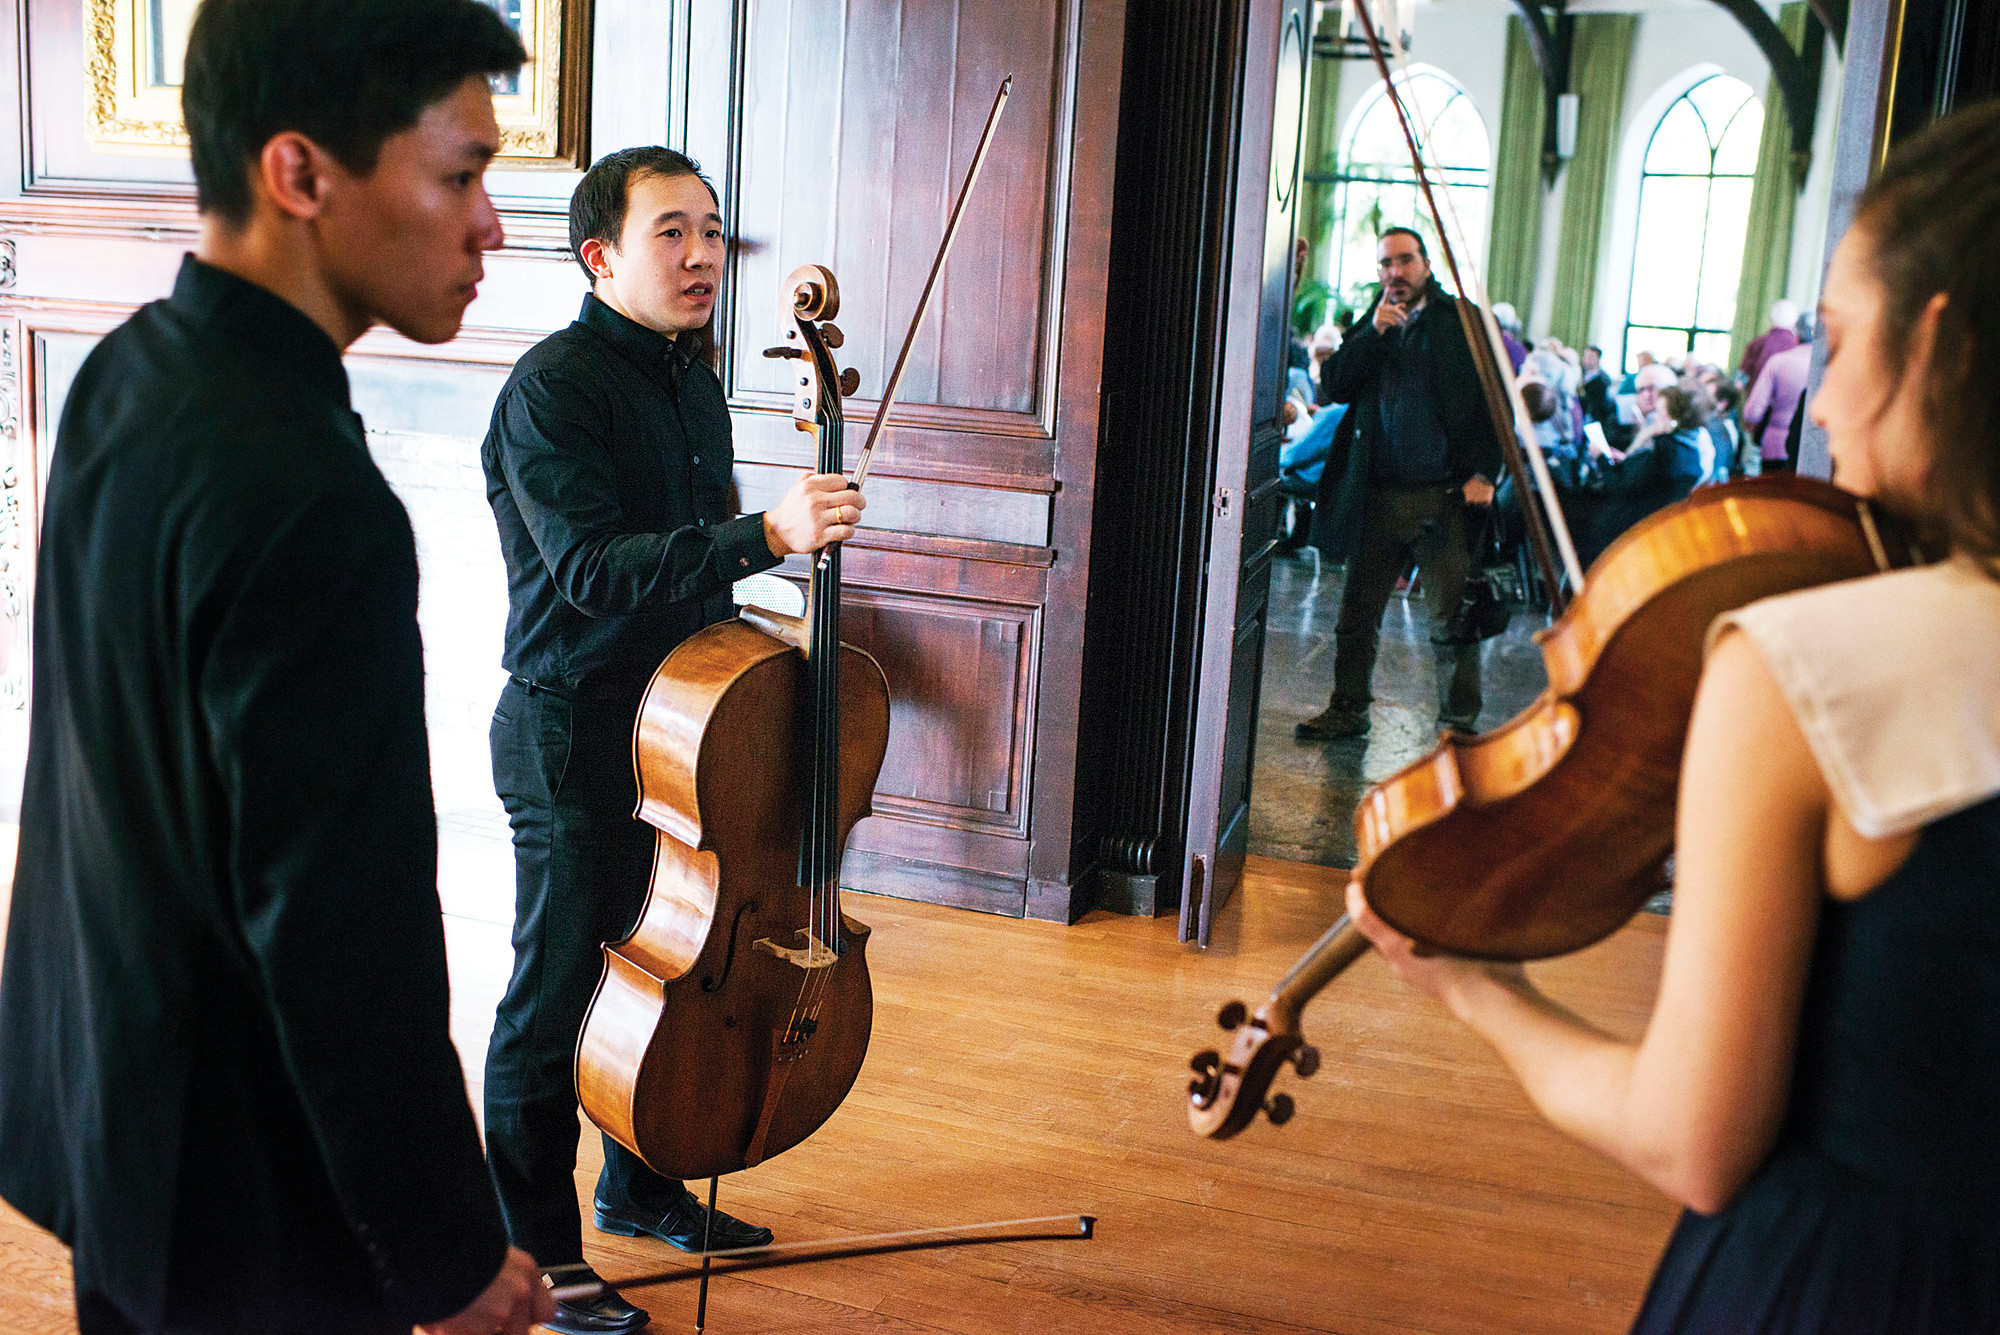 Violinist Daniel Chong, cellist Kee-Hyun Kim, and violist Jessica Bodner wait to enter the concert hall at the Wave HIll estate, before a classical performance by their group, the Parker Quartet, on Jan. 11, 2015.